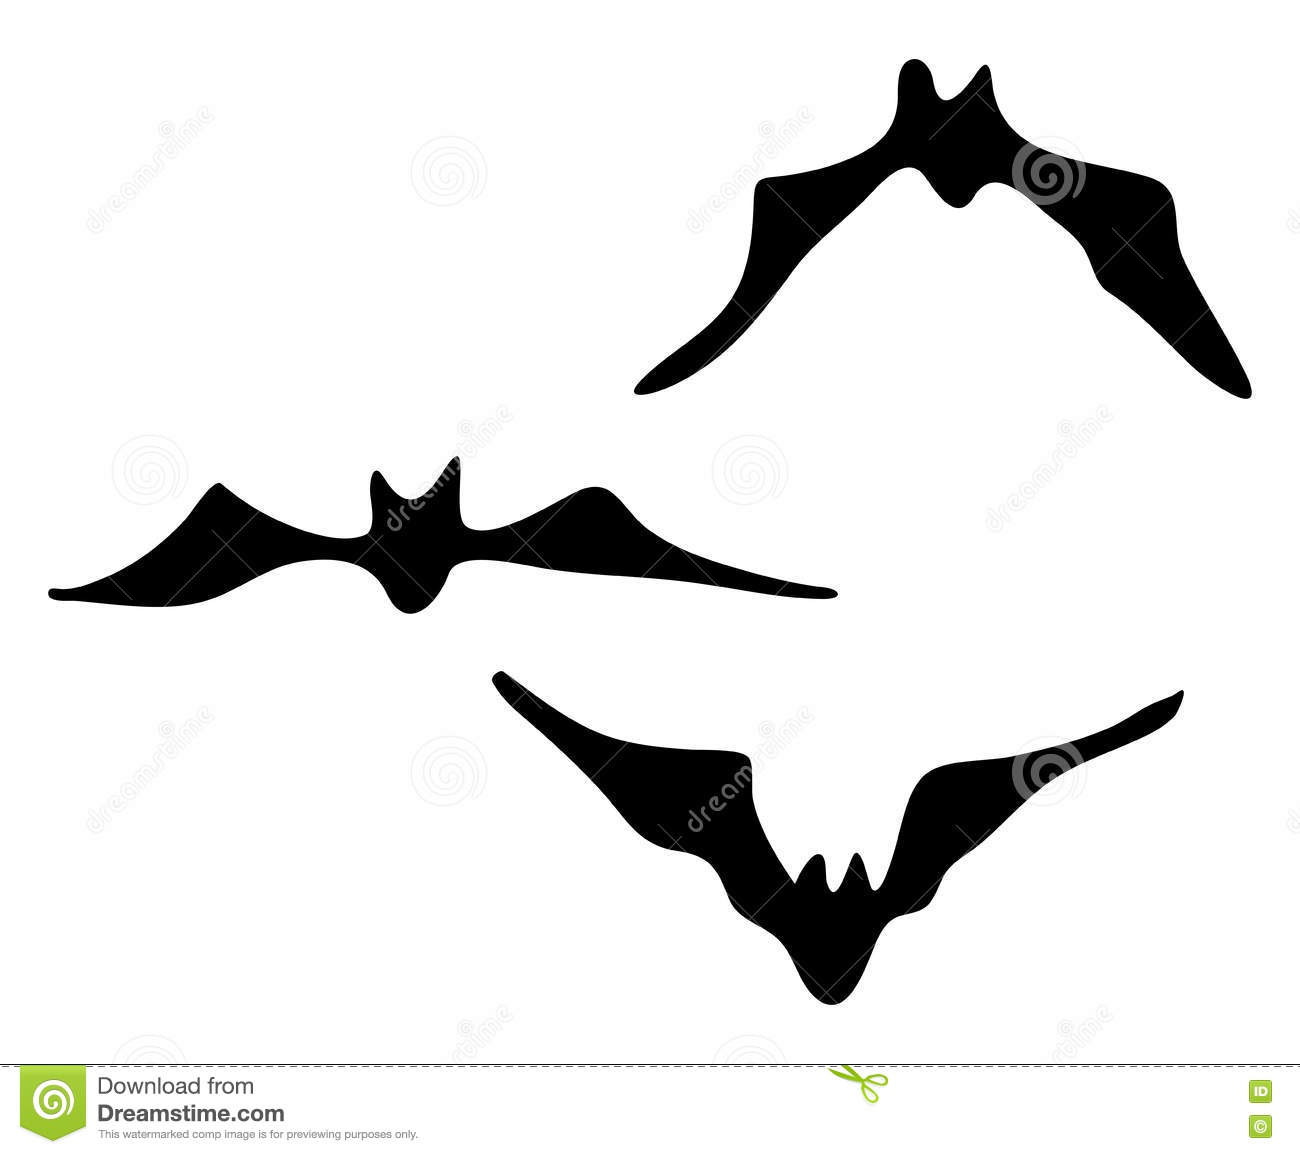 halloween creepy scary bat silhouette vector symbol icon design